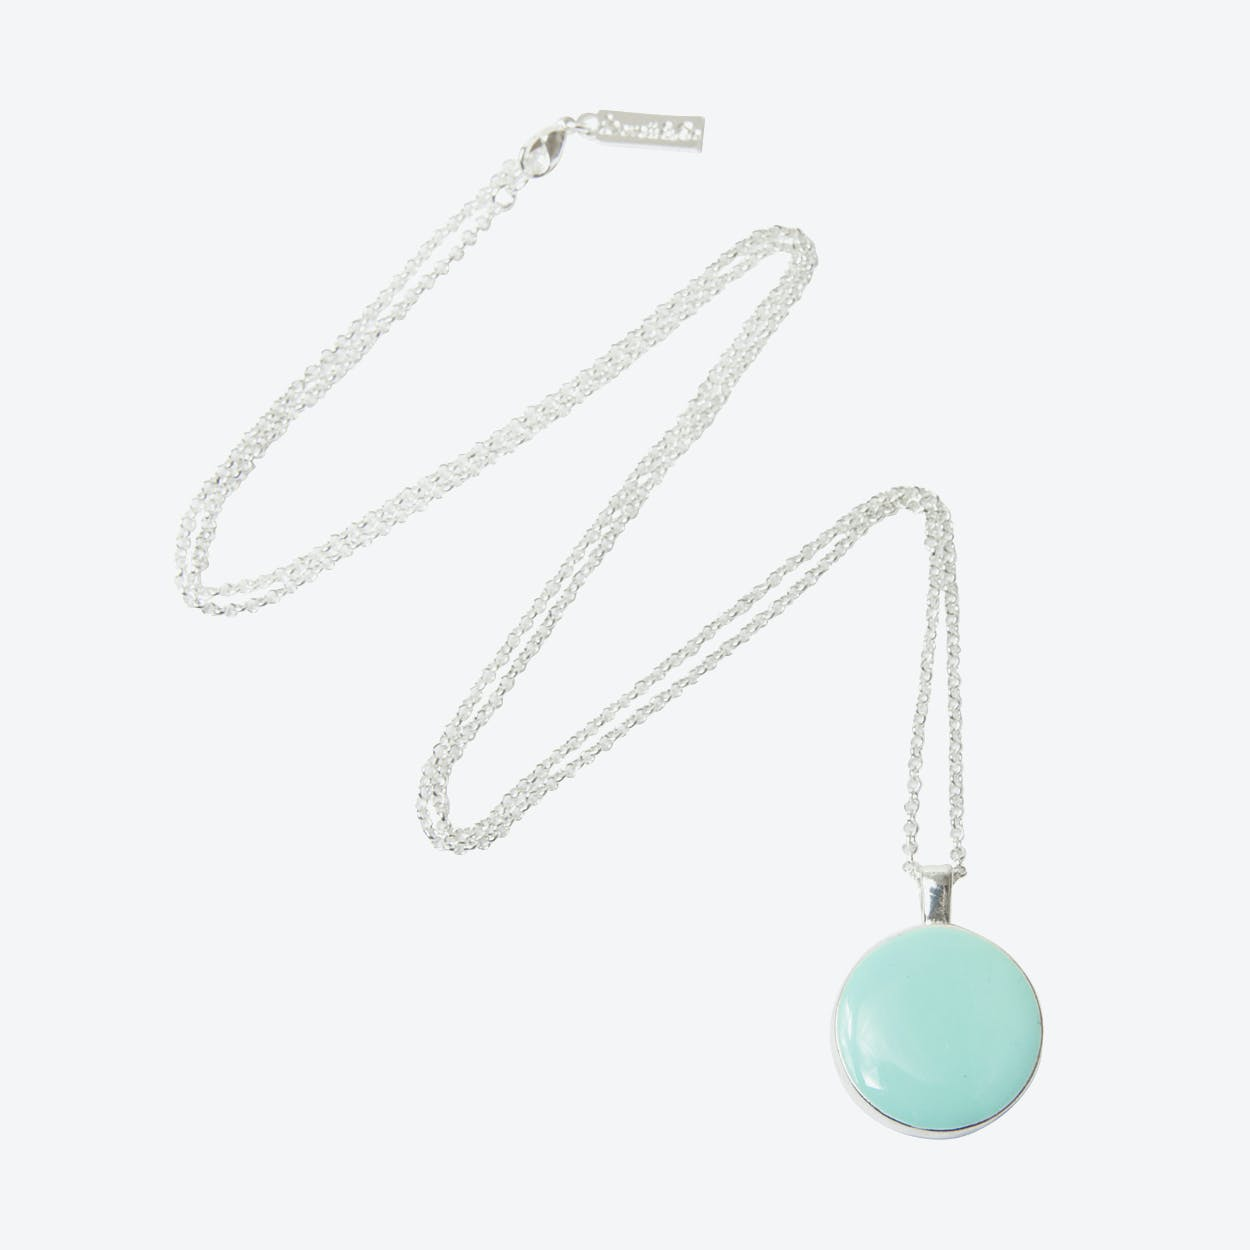 Mother of Pearl Reversible Necklace in Silver/Duck Egg Blue